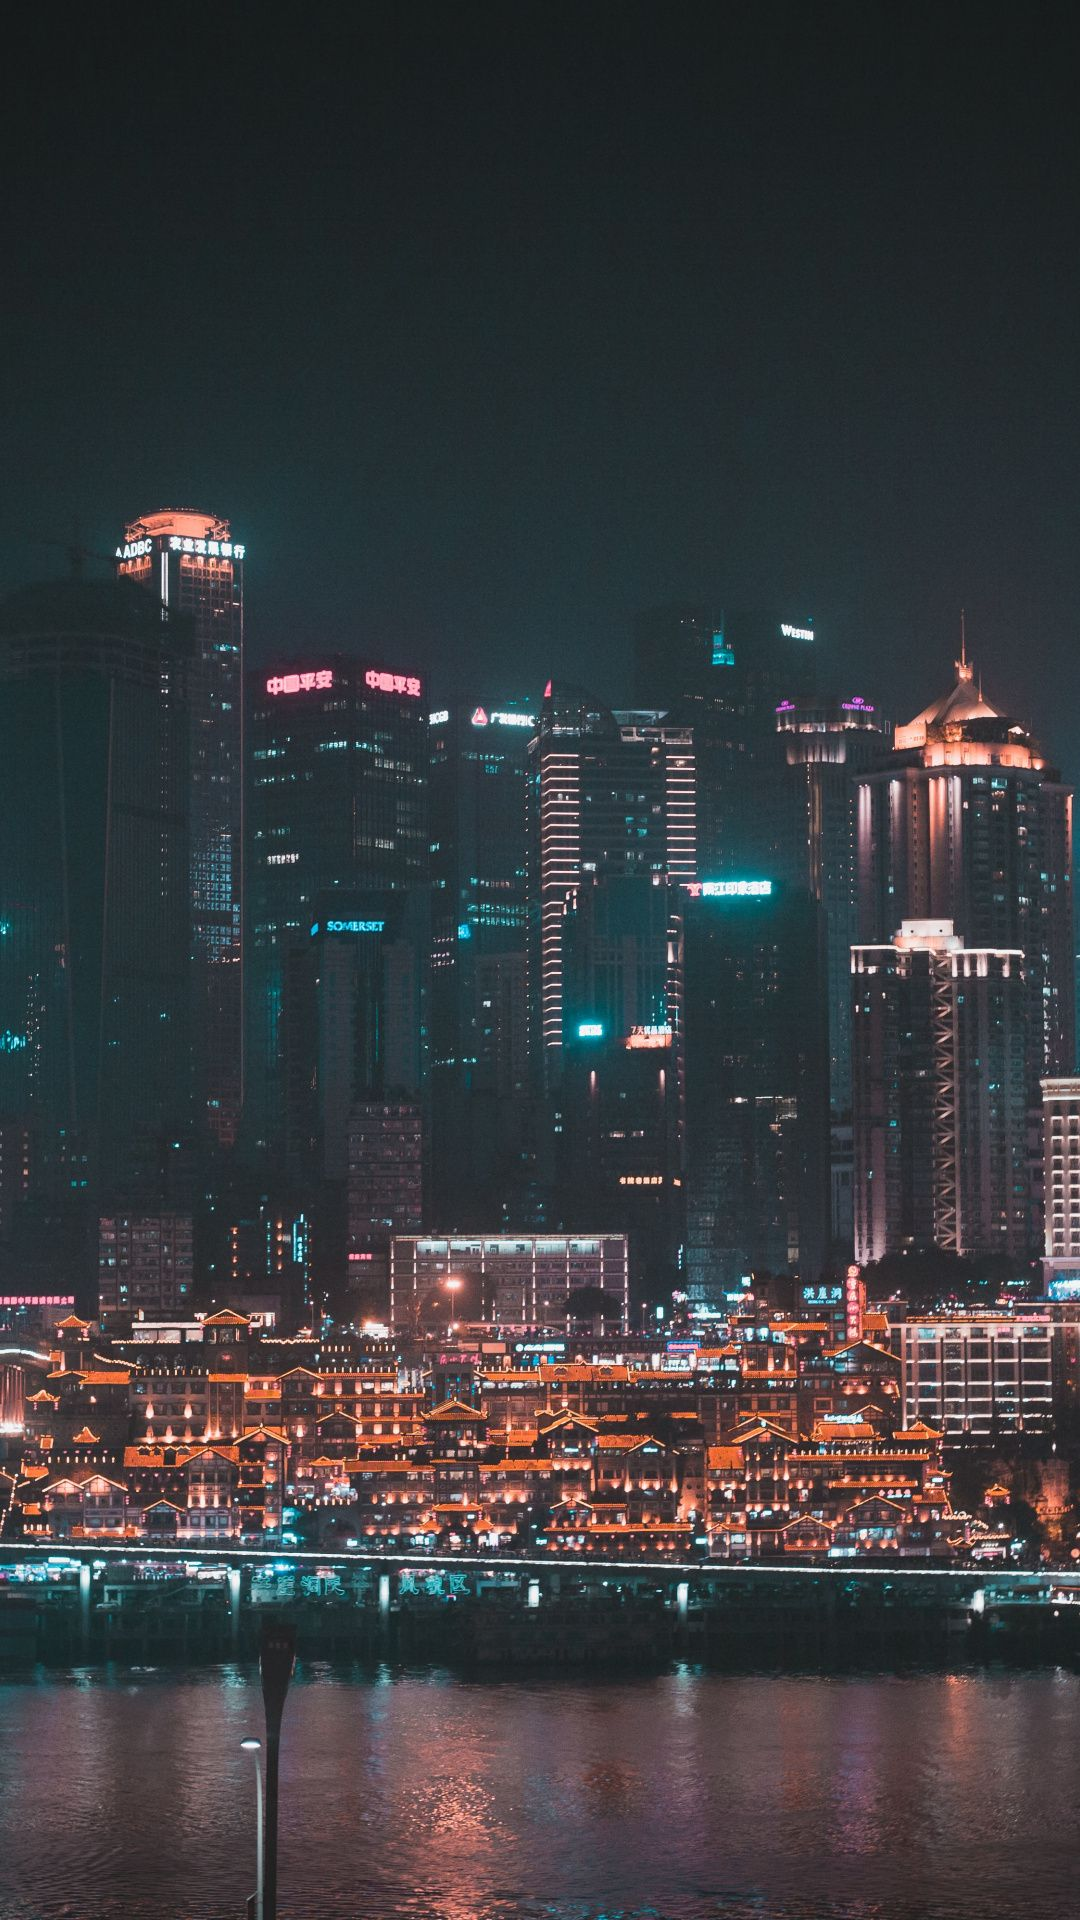 1080x1920 City Night Lights Of Buildings Cityscape Wallpaper Cityscape Wallpaper City Wallpaper City Aesthetic